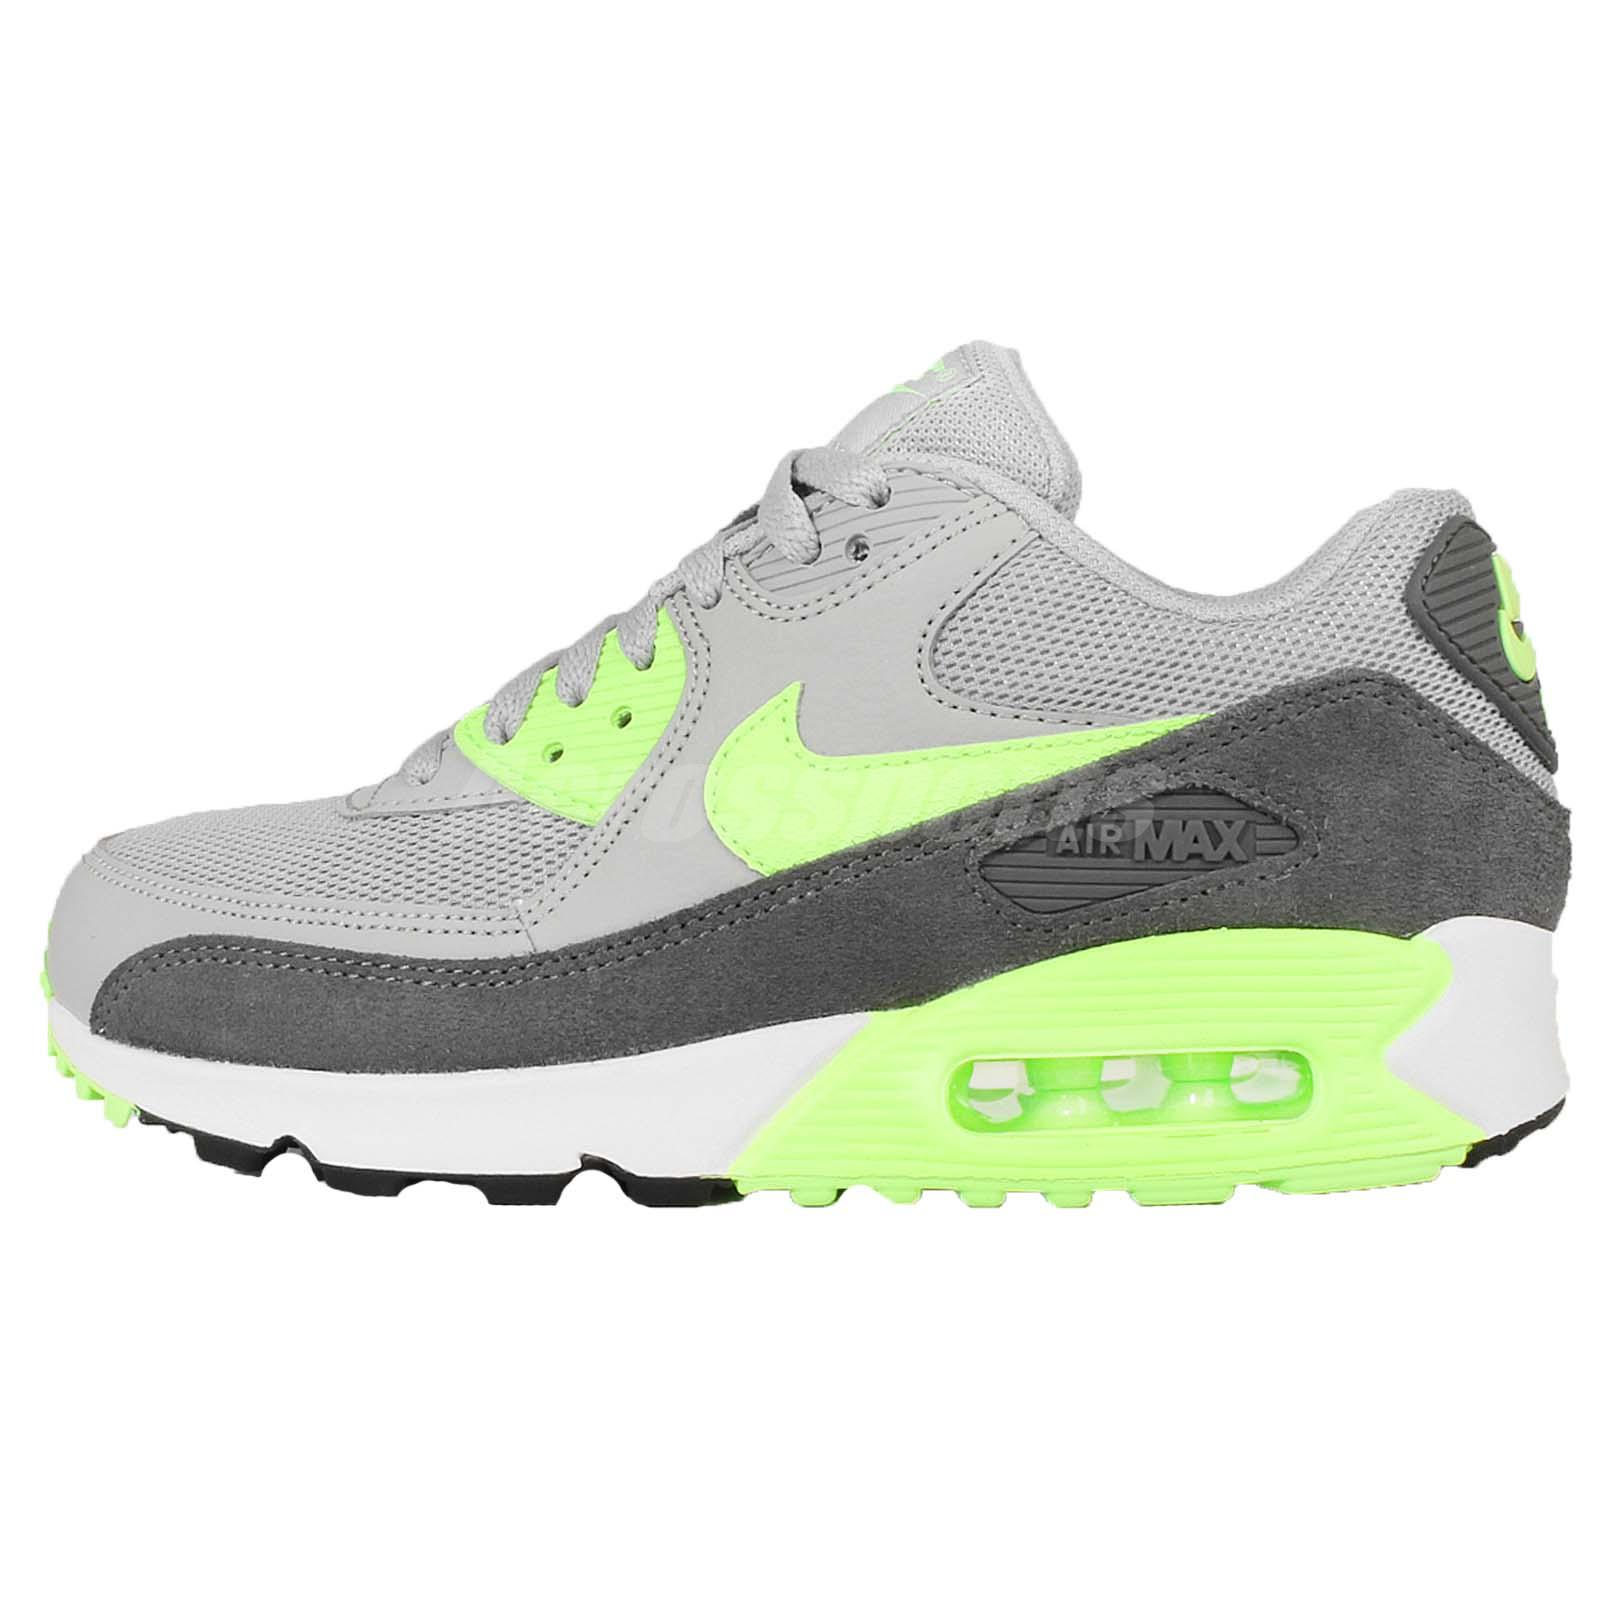 wmns nike air max 90 essential grey green womens nsw. Black Bedroom Furniture Sets. Home Design Ideas